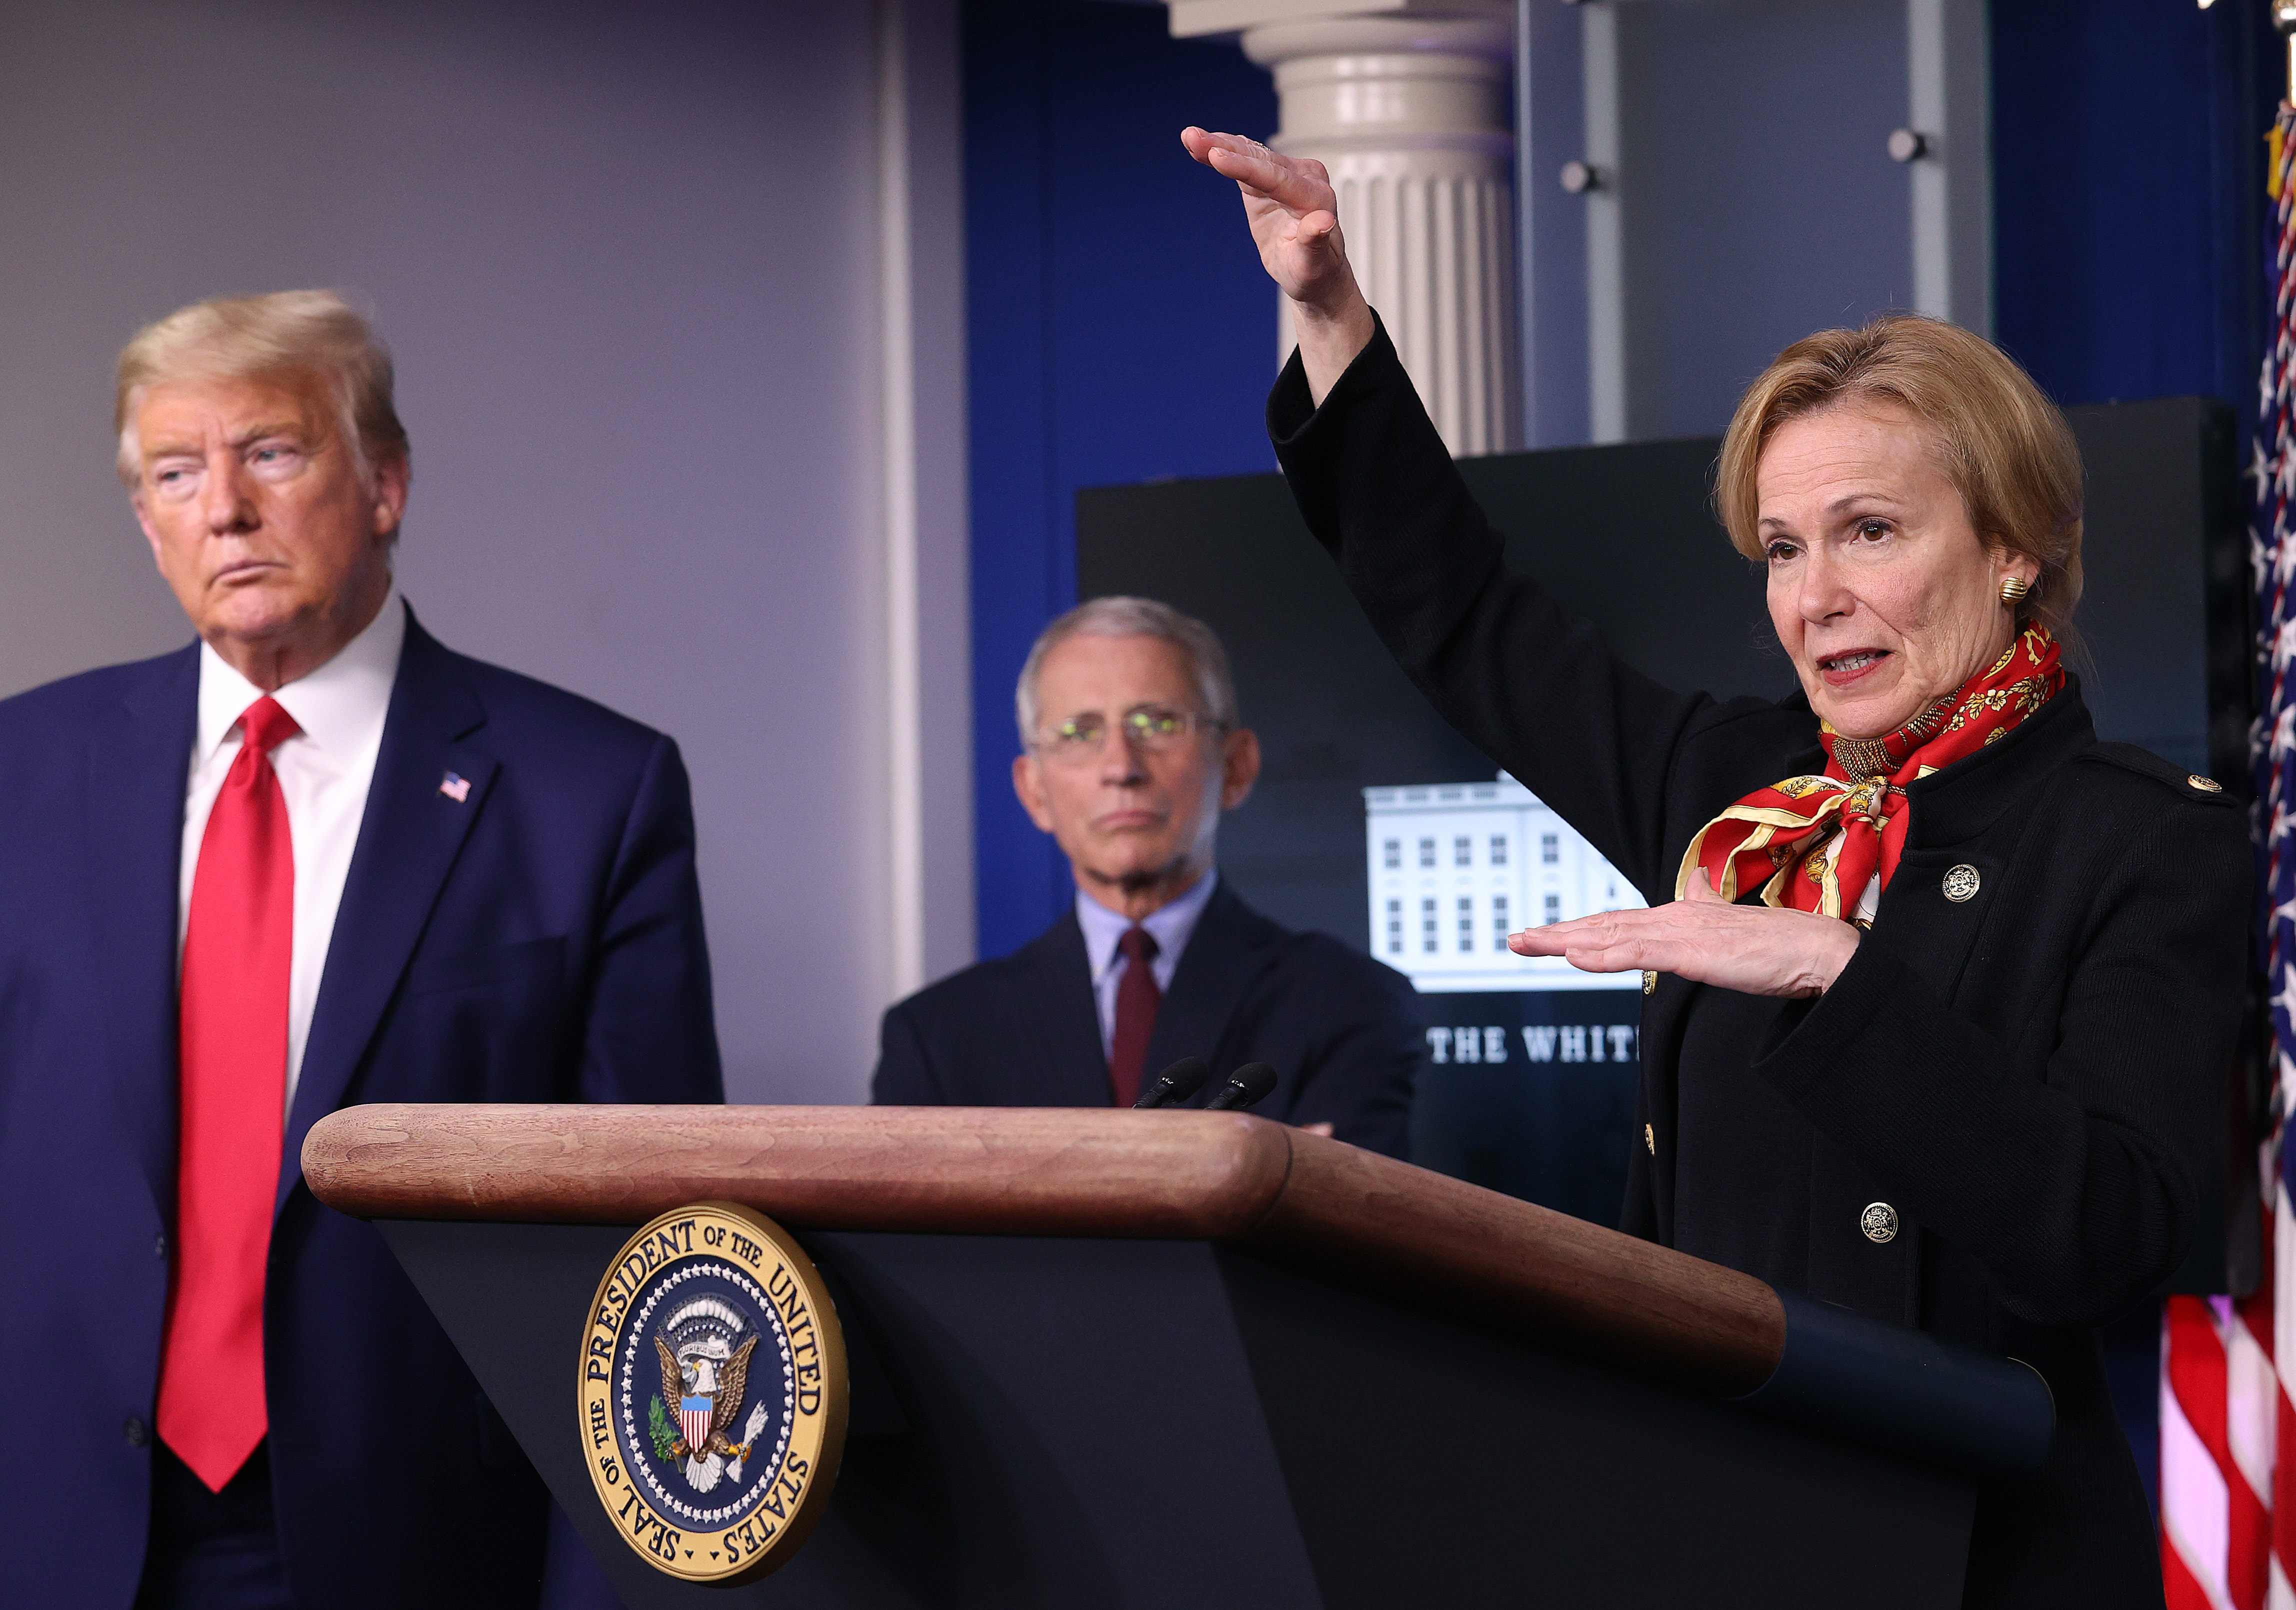 WASHINGTON, DC - MARCH 31: White House coronavirus response coordinator Debbie Birx speaks while flanked by President Donald Trump (L), and Dr. Anthony Fauci (C), director of the National Institute of Allergy and Infectious Diseases, during the daily coronavirus task force briefing in the Brady Briefing room at the White House on March 31, 2020 in Washington, DC. With the nationwide death toll rising due to the coronavirus, the United States has extended its social distancing practices through the end of April, while many states have issued stay-at-home orders that strongly discourage residents from leaving home unless absolutely necessary or essential. (Photo by Win McNamee/Getty Images)